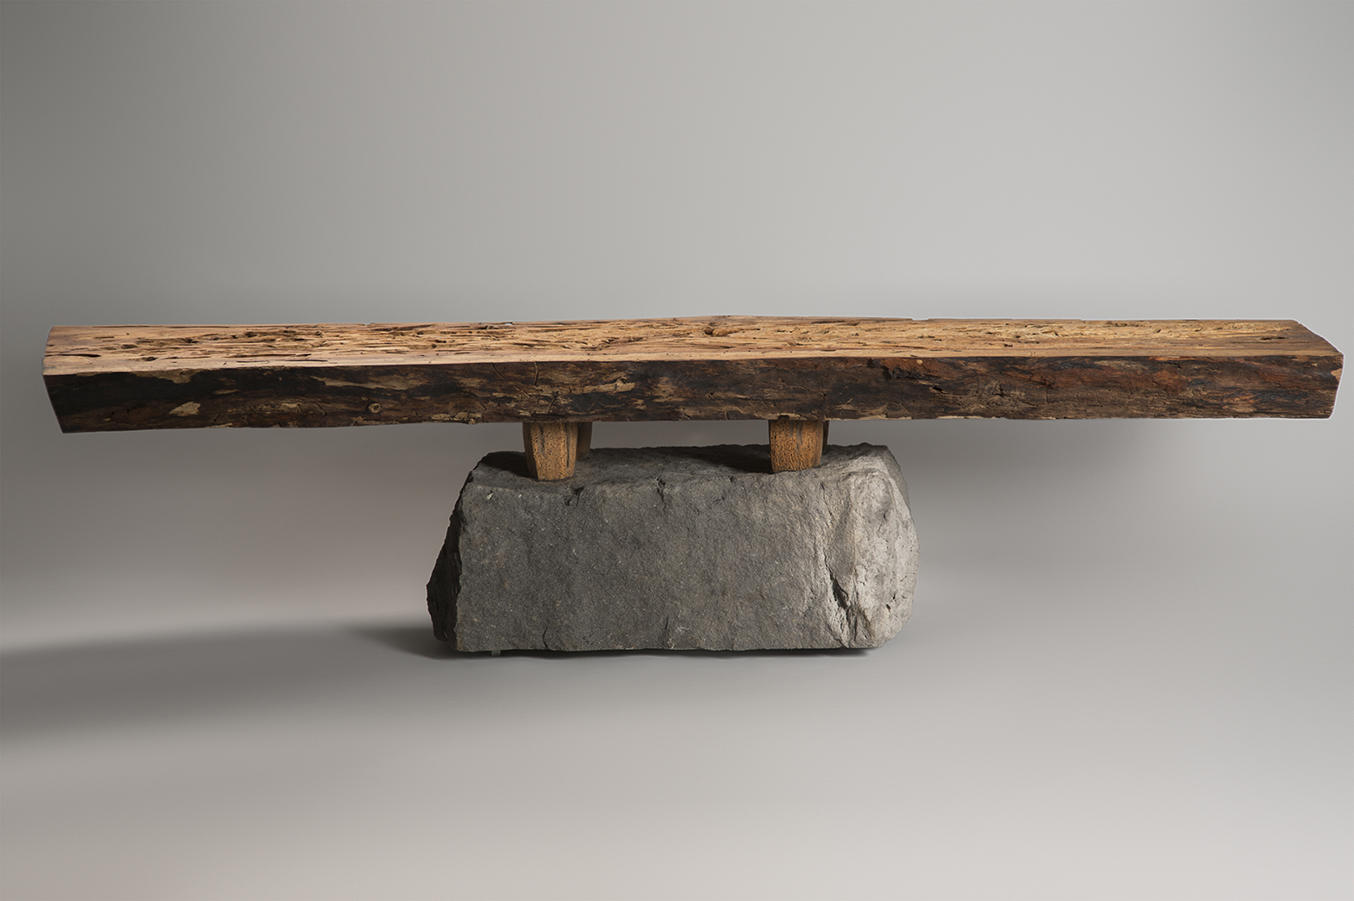 web2-bench-salvaged-mexican-alder-wood-basalt-recinto-with-feet-shi-ho-julio-martinez-marion-friedmann-gallery-22.jpg